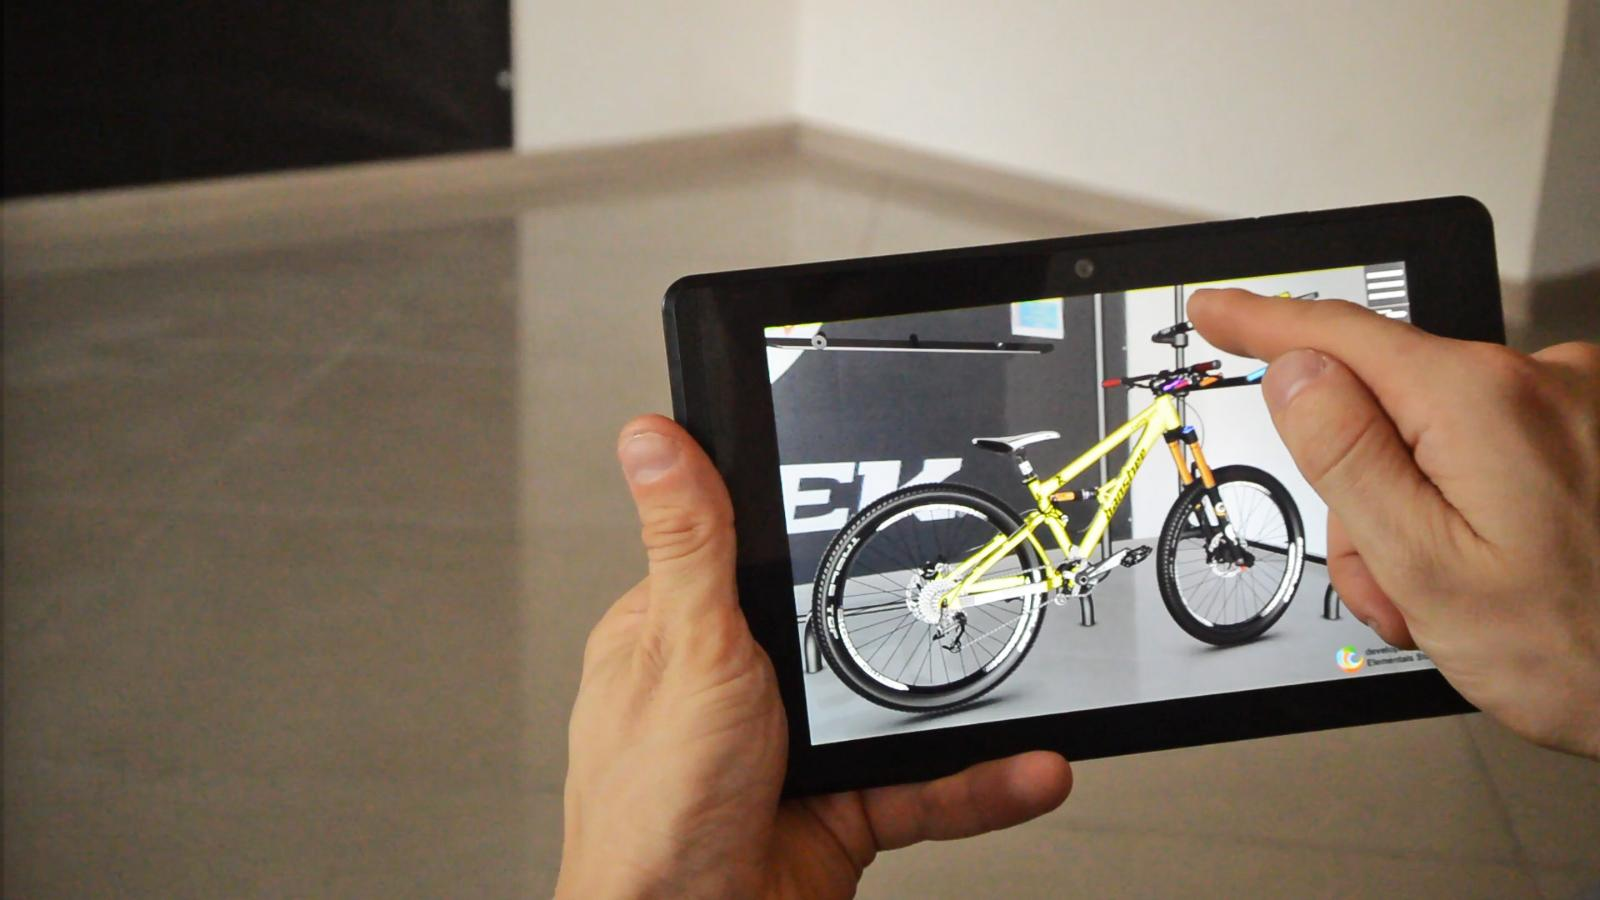 Bike Config AR Store 1 0 5 APK Download - Android Shopping Apps